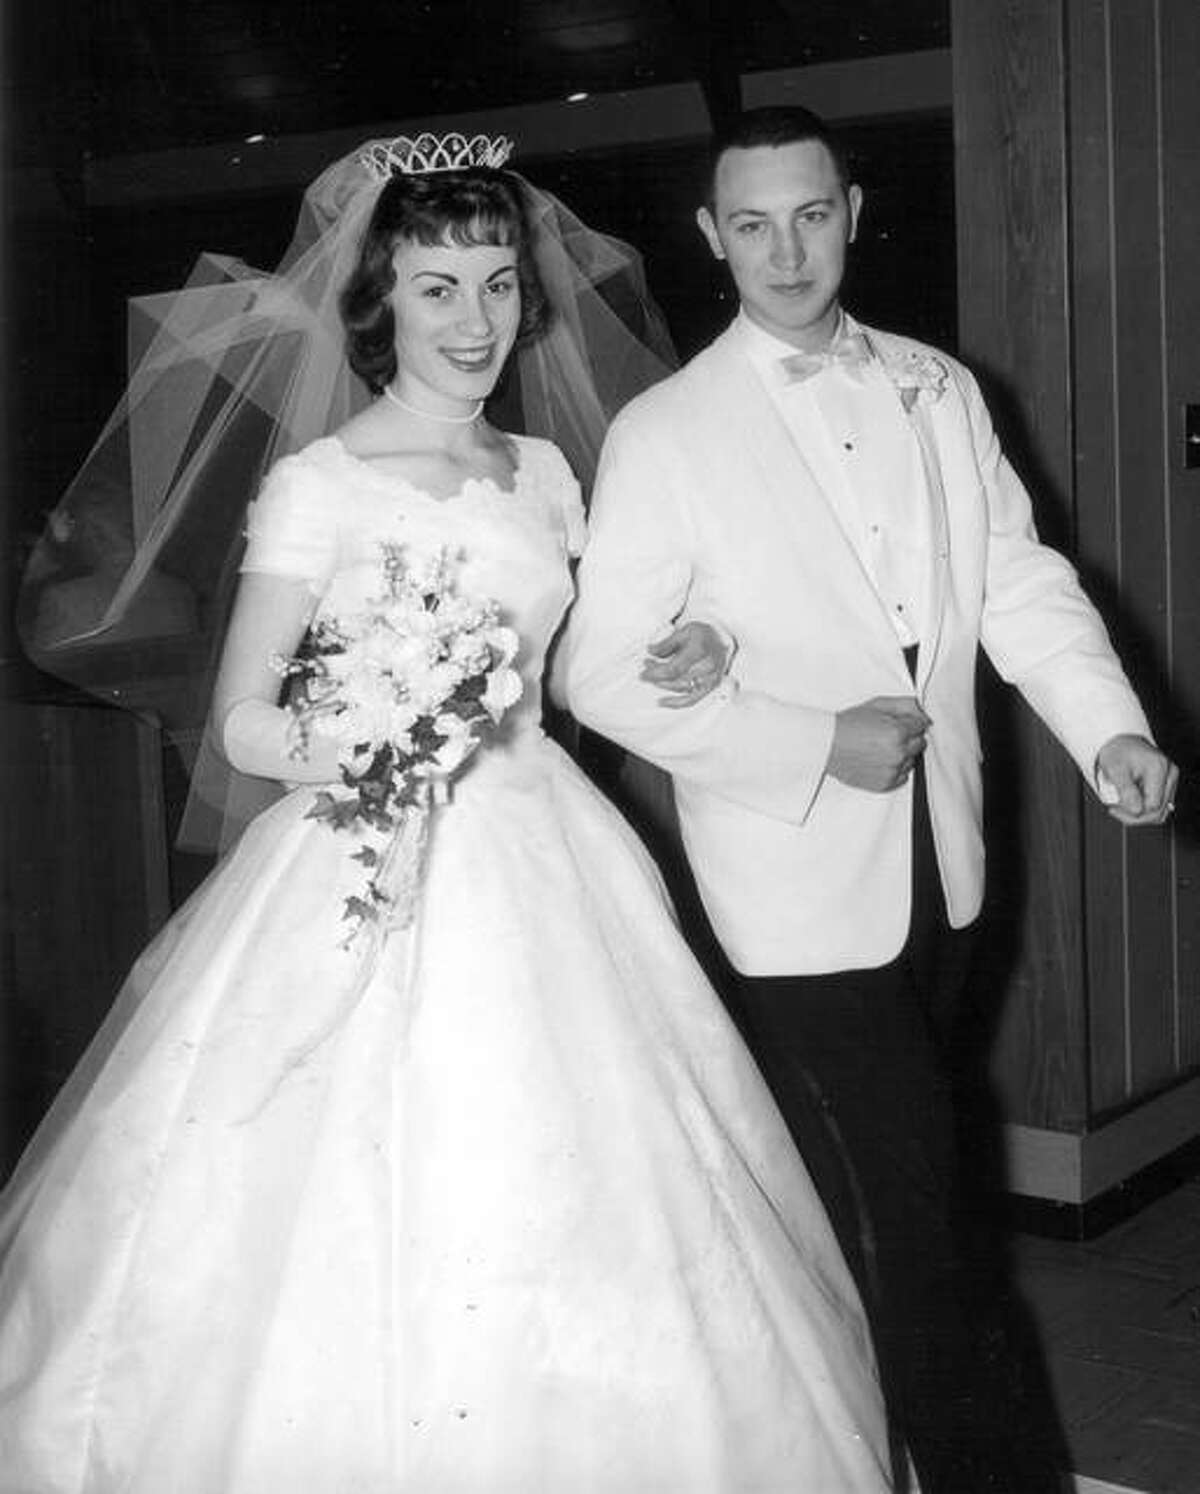 Charlie and Ellie Dralle at their wedding